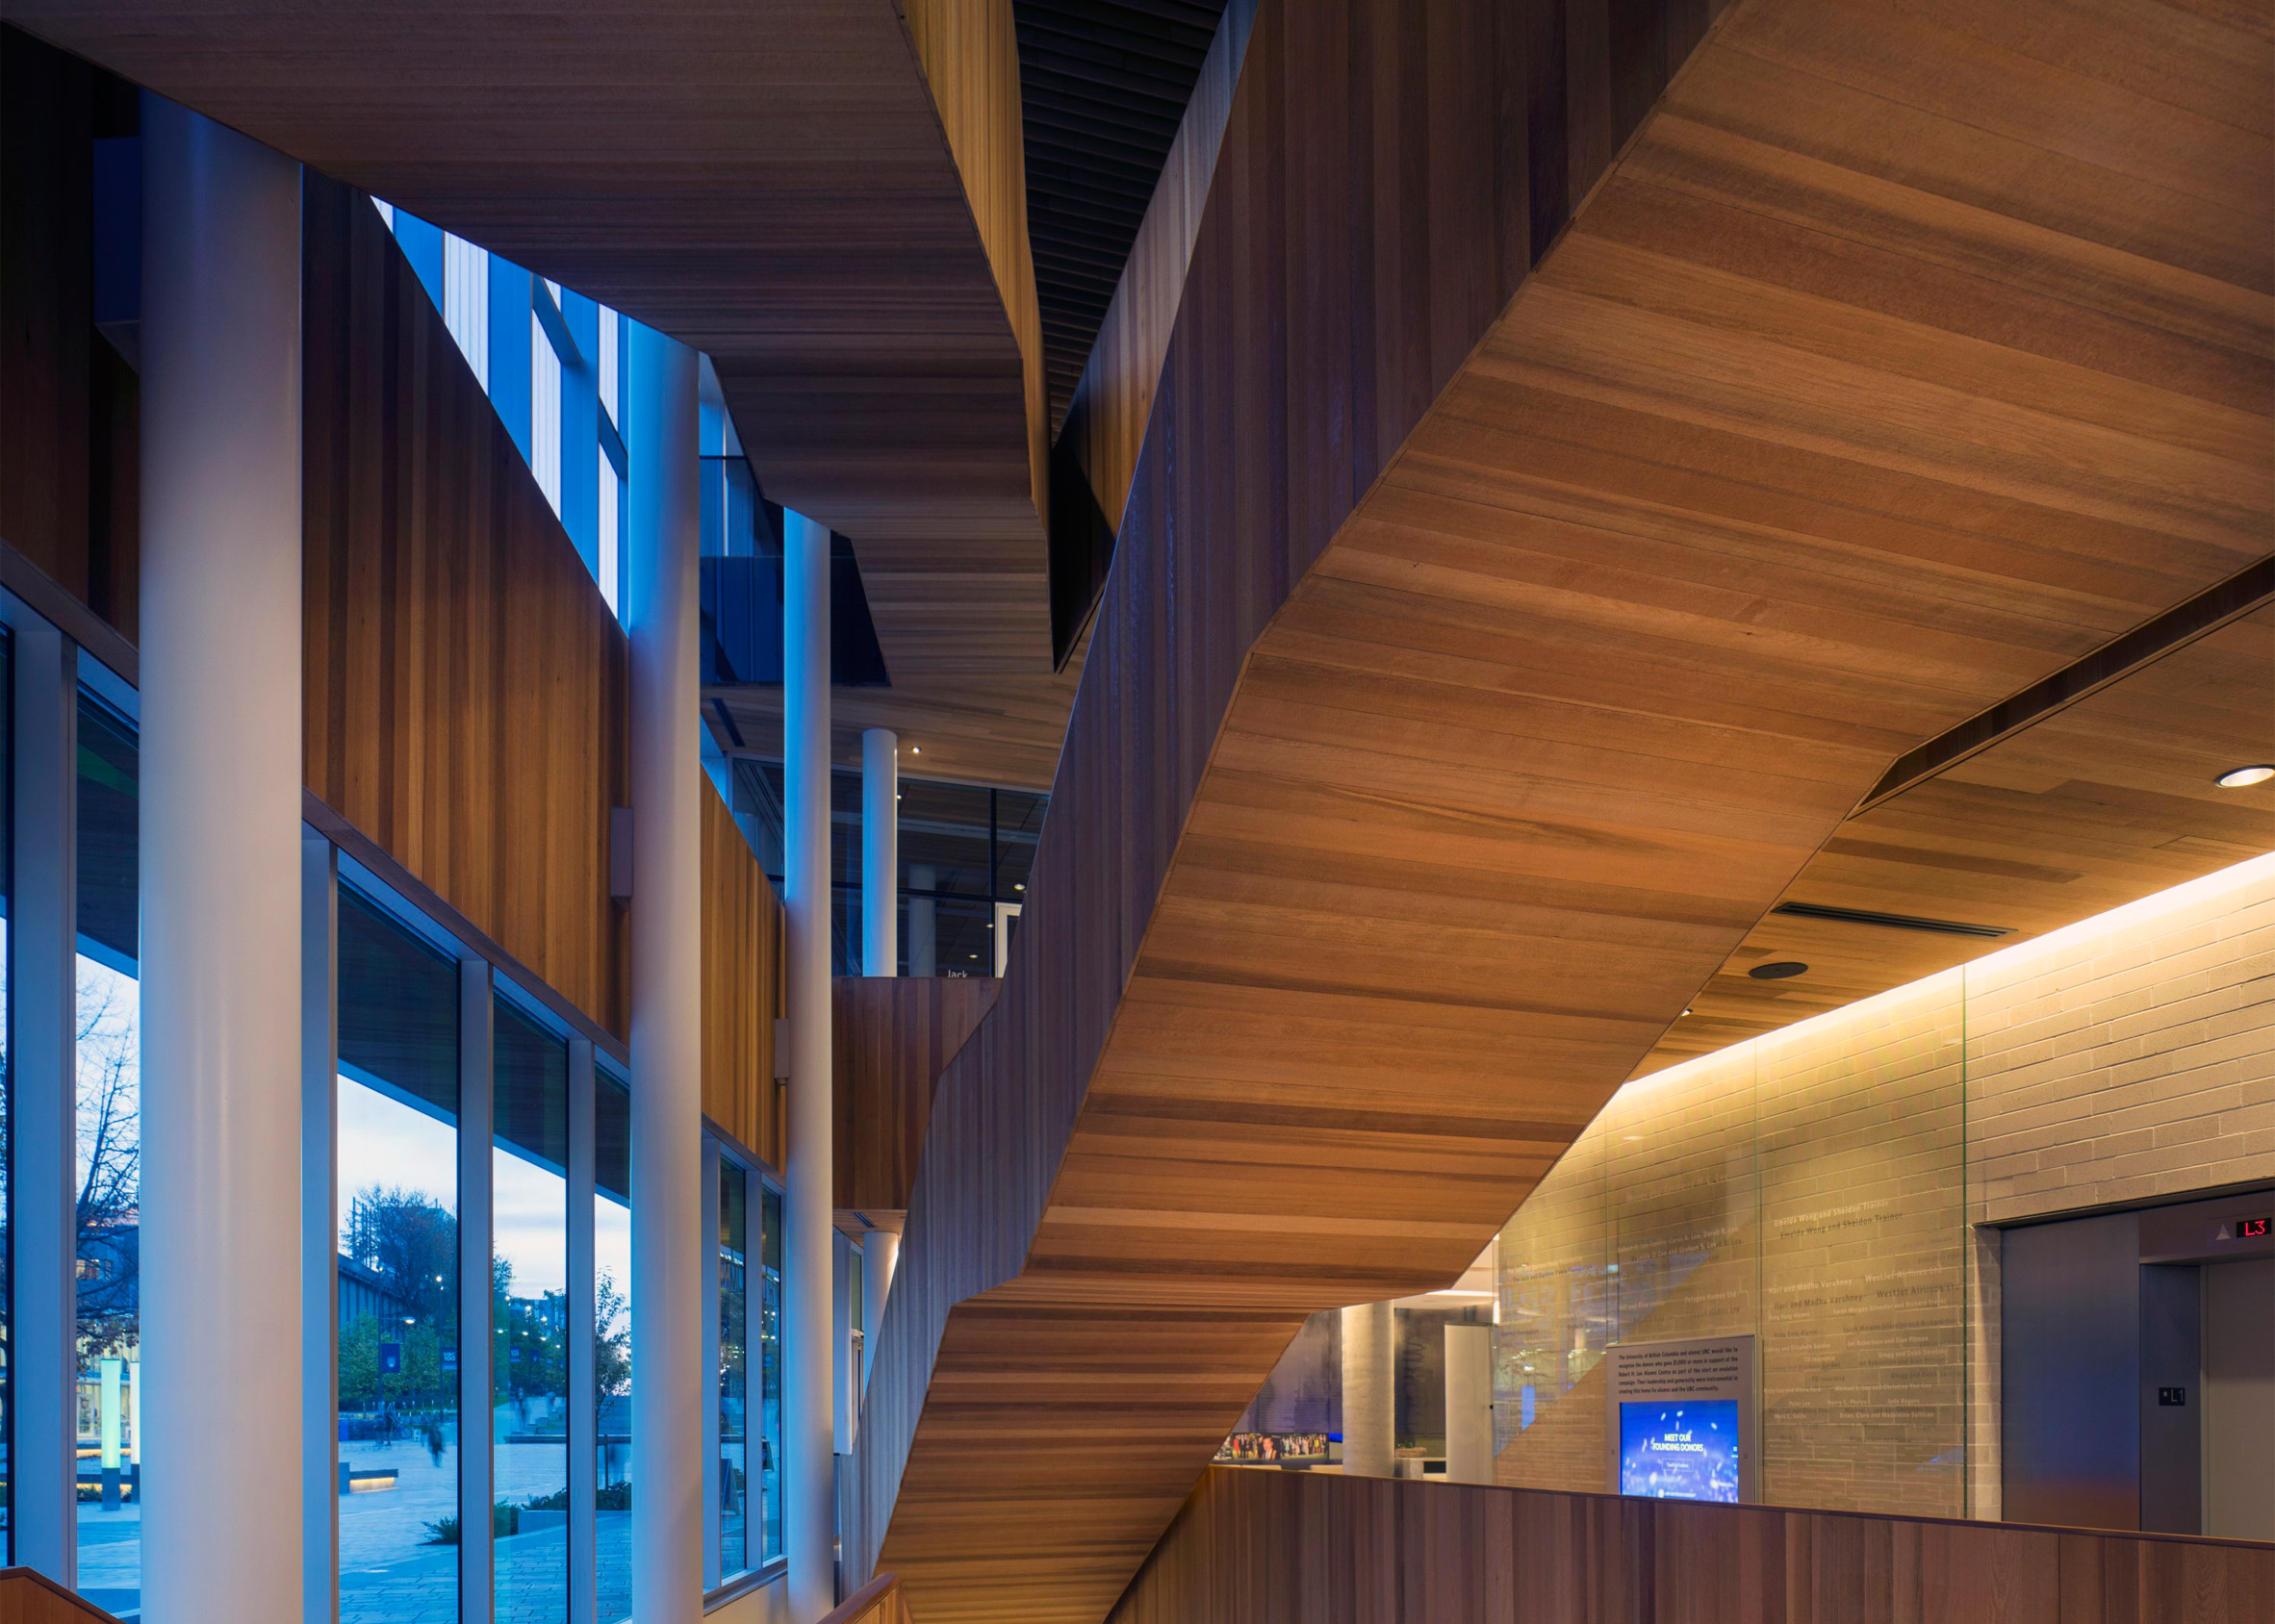 Vancouver university building by KPMB features fritted glass and rough-sawn cedar